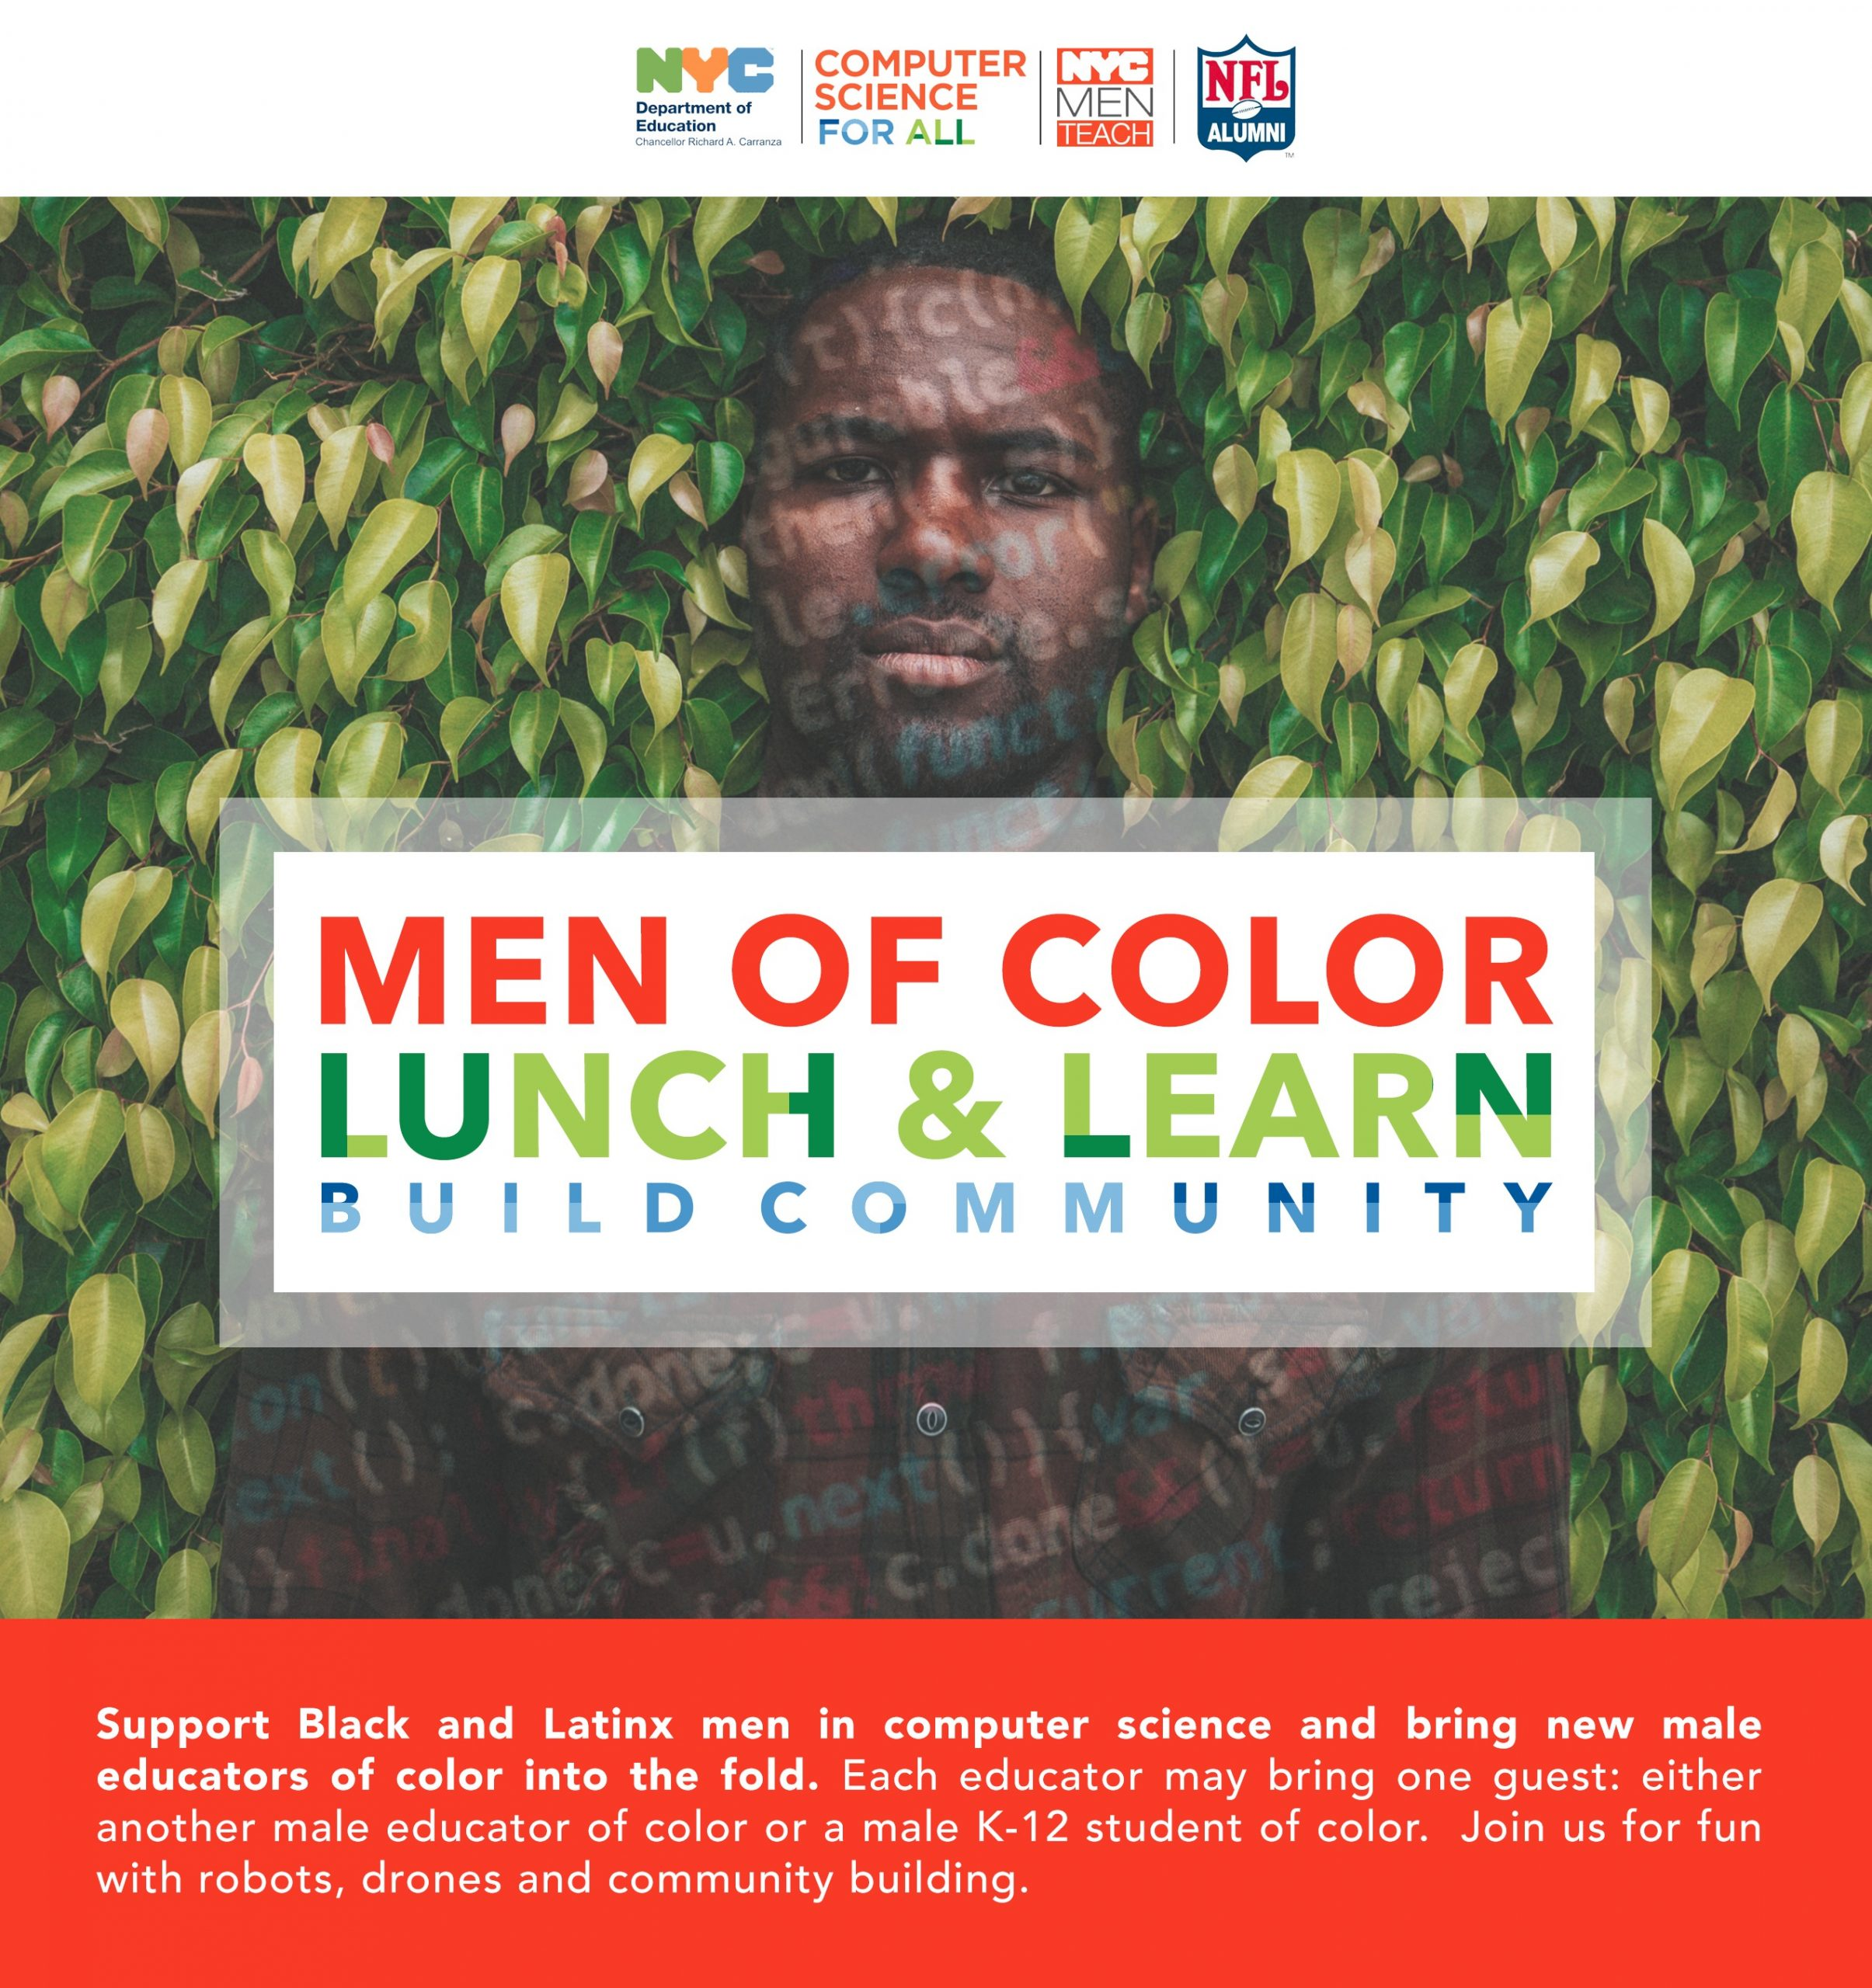 NYC Men of Color Lunch & Learn